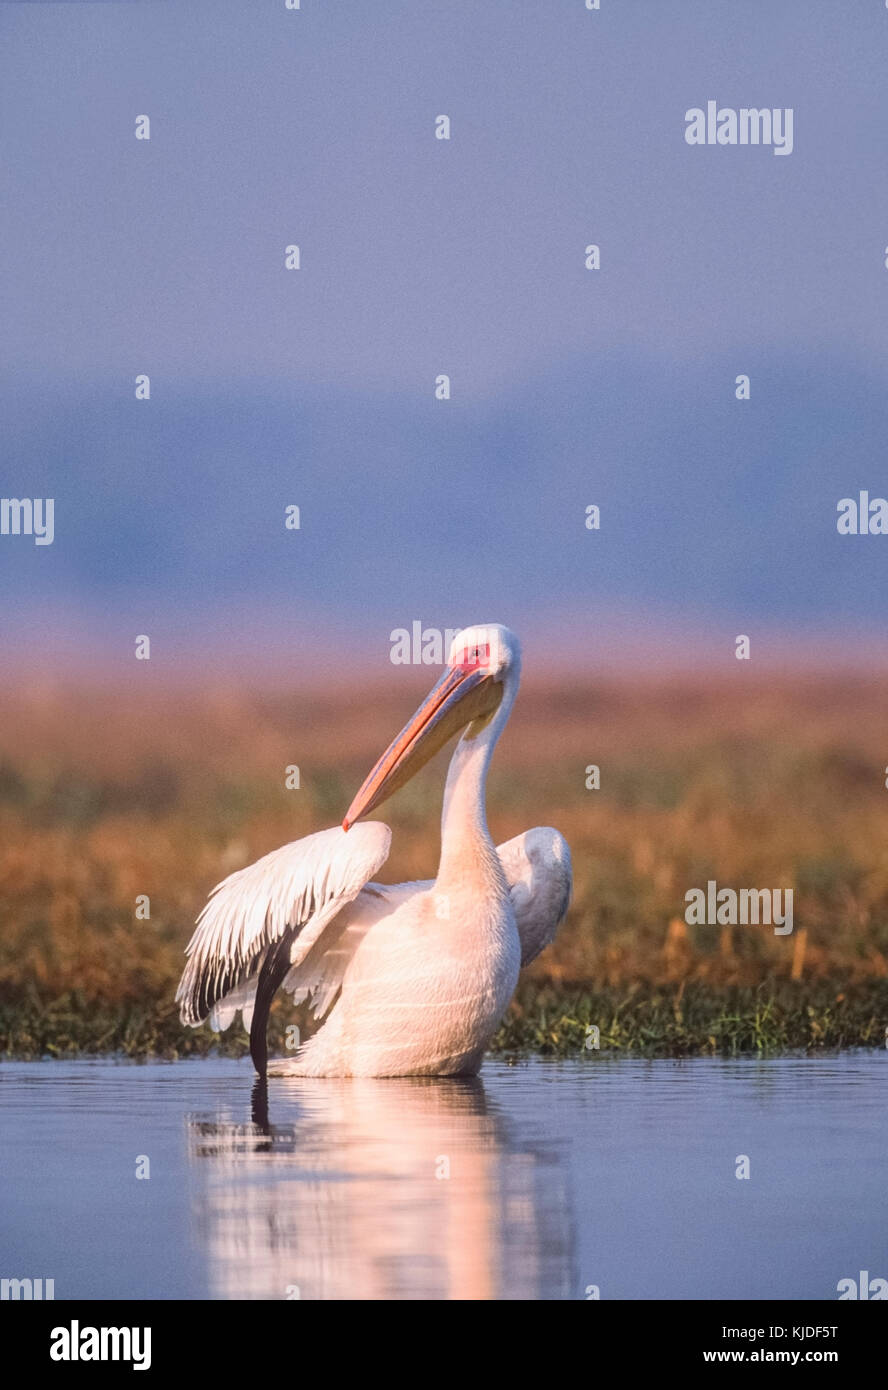 Great White Pelican,Pelecanus onocrotalus, also known Eastern white pelican or Rosy pelican, Keoladeo Ghana National - Stock Image